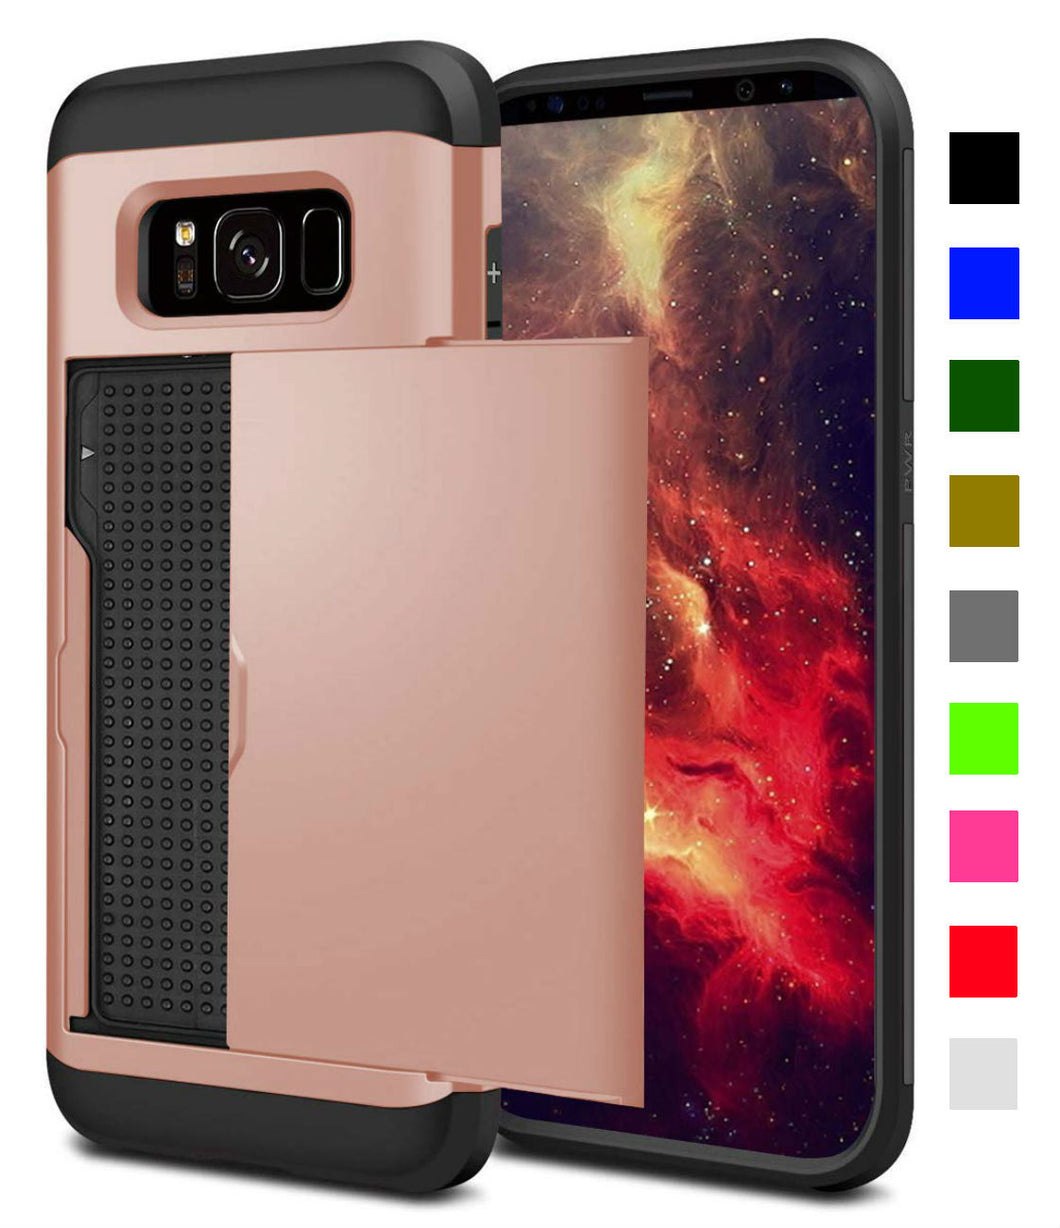 Card Slot Tough Armor Wallet Design Case Samsung Galaxy S10 / S10 Plus / S10 Edge - BingBongBoom